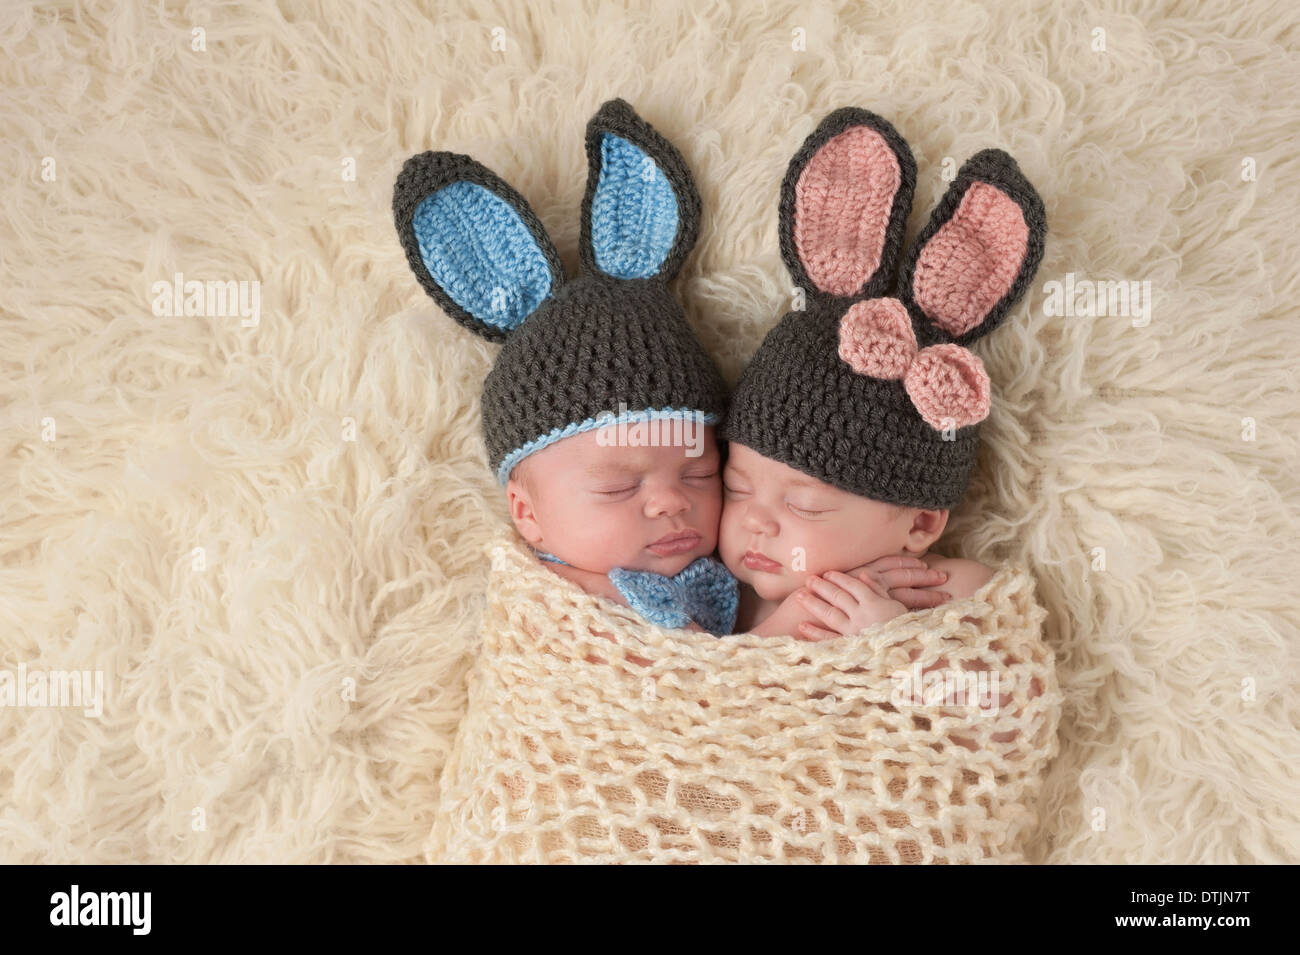 Babies Wearing Hats Stock Photos   Babies Wearing Hats Stock Images ... 7fc5a4b1fdd